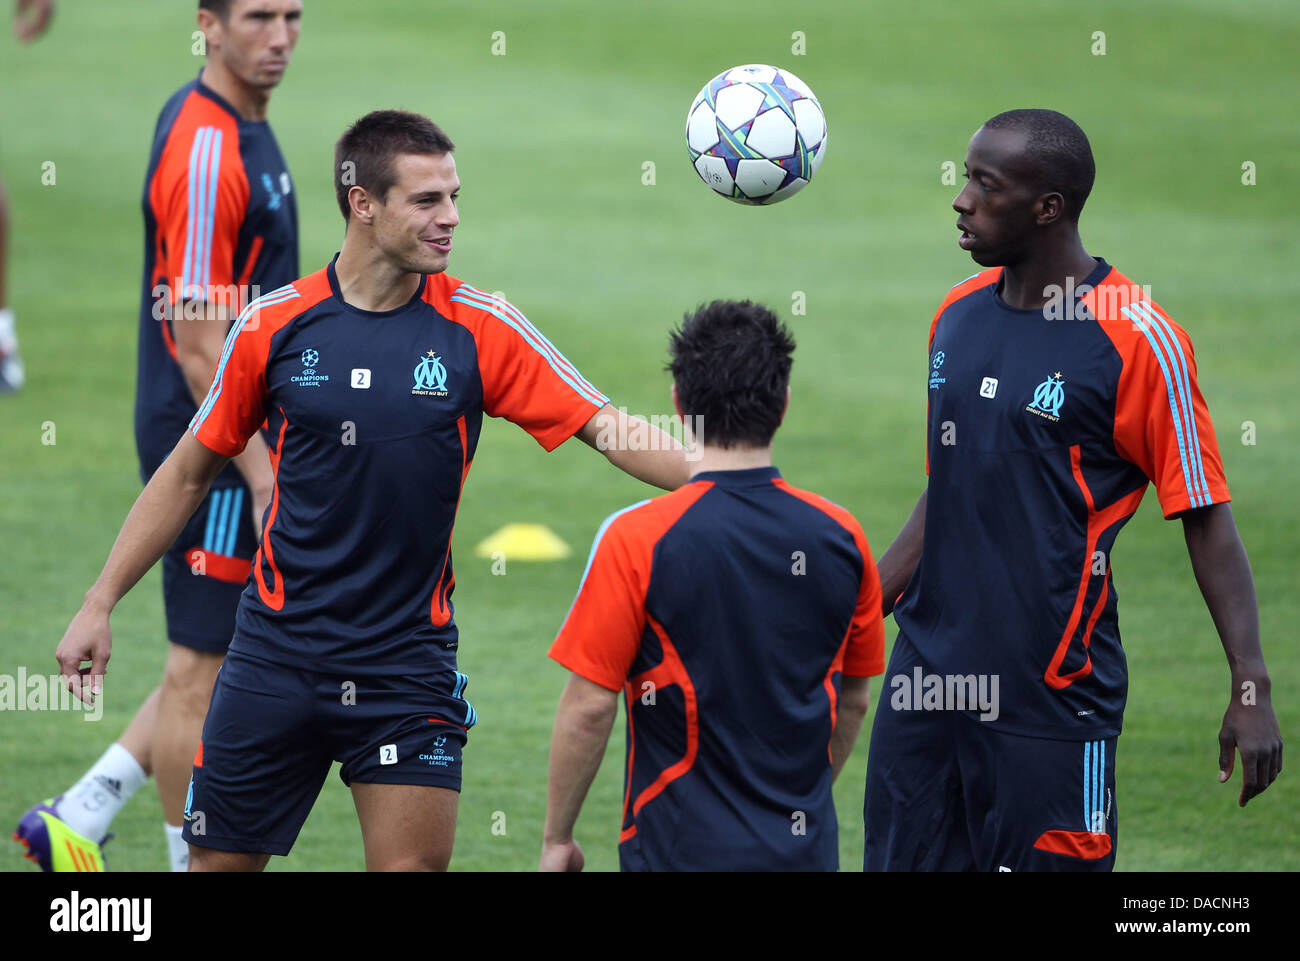 Azpi (l) and Diawara (r) of Olympique Marseille attends a training session at the Stade Velodrome in Marseille, - Stock Image